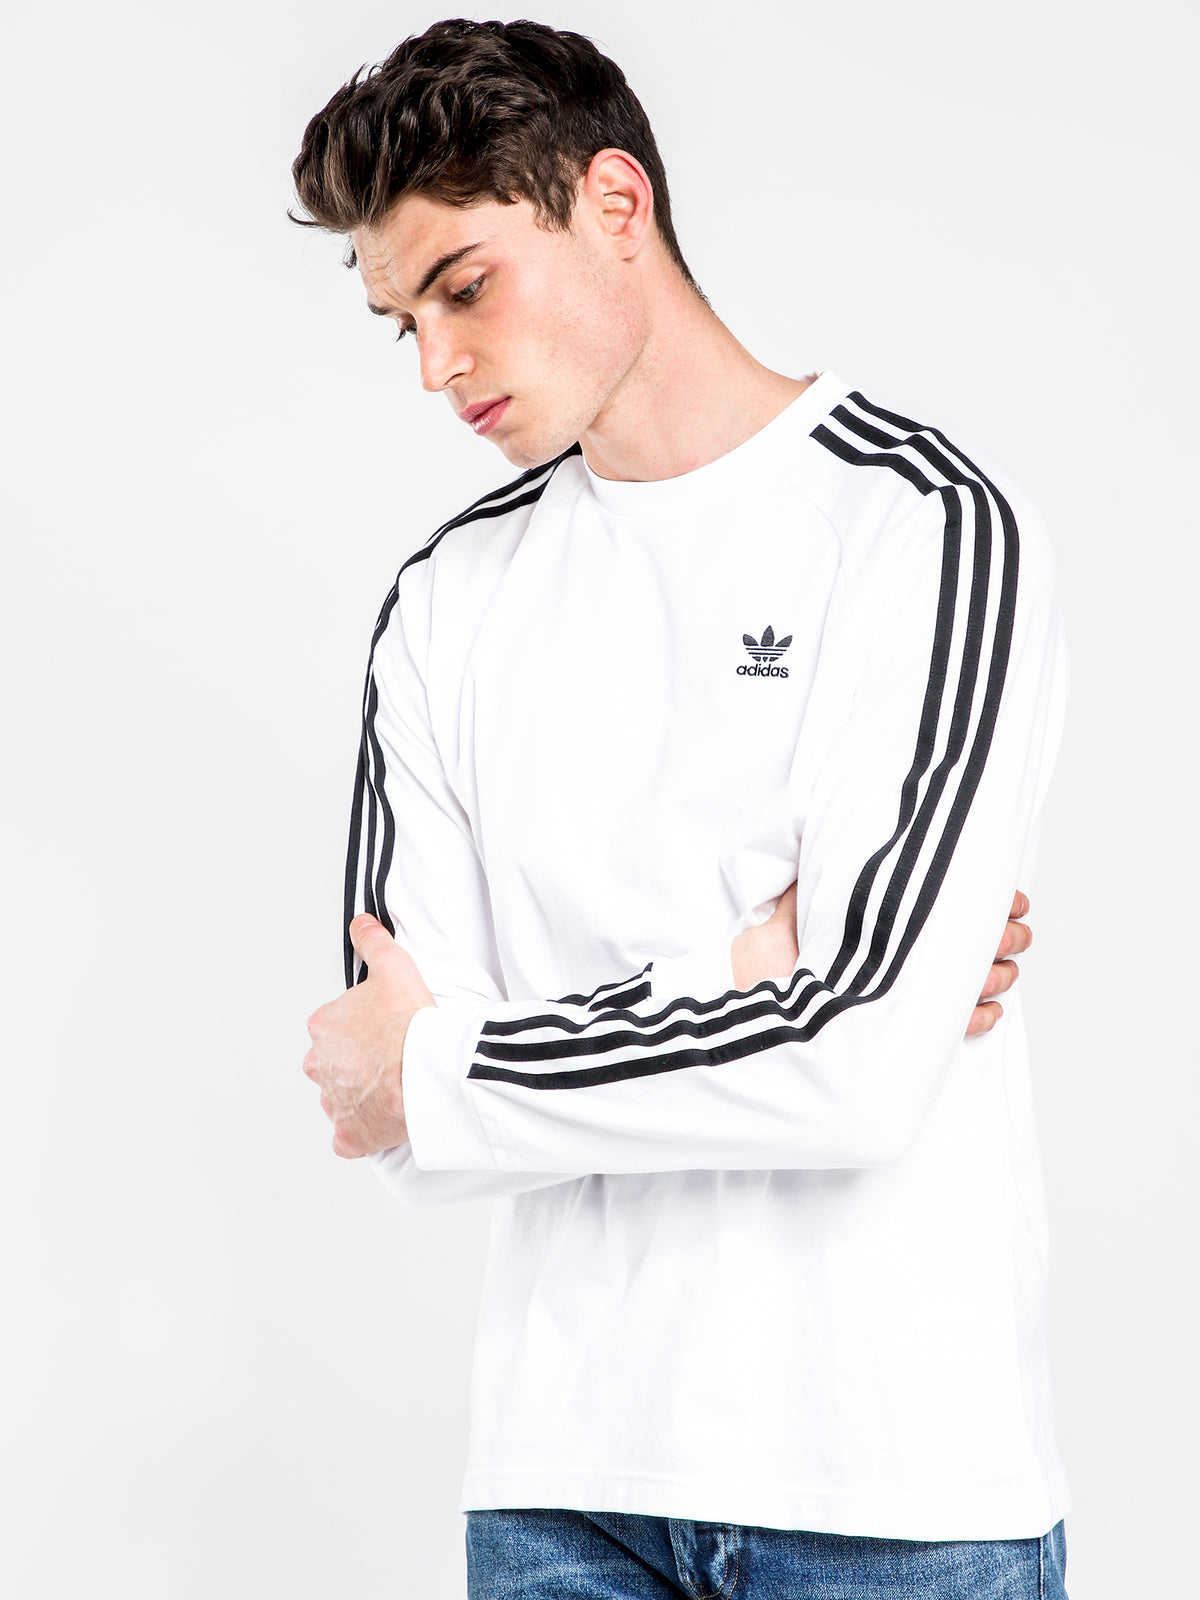 3 Stripes Long Sleeve T-Shirt in White & Black